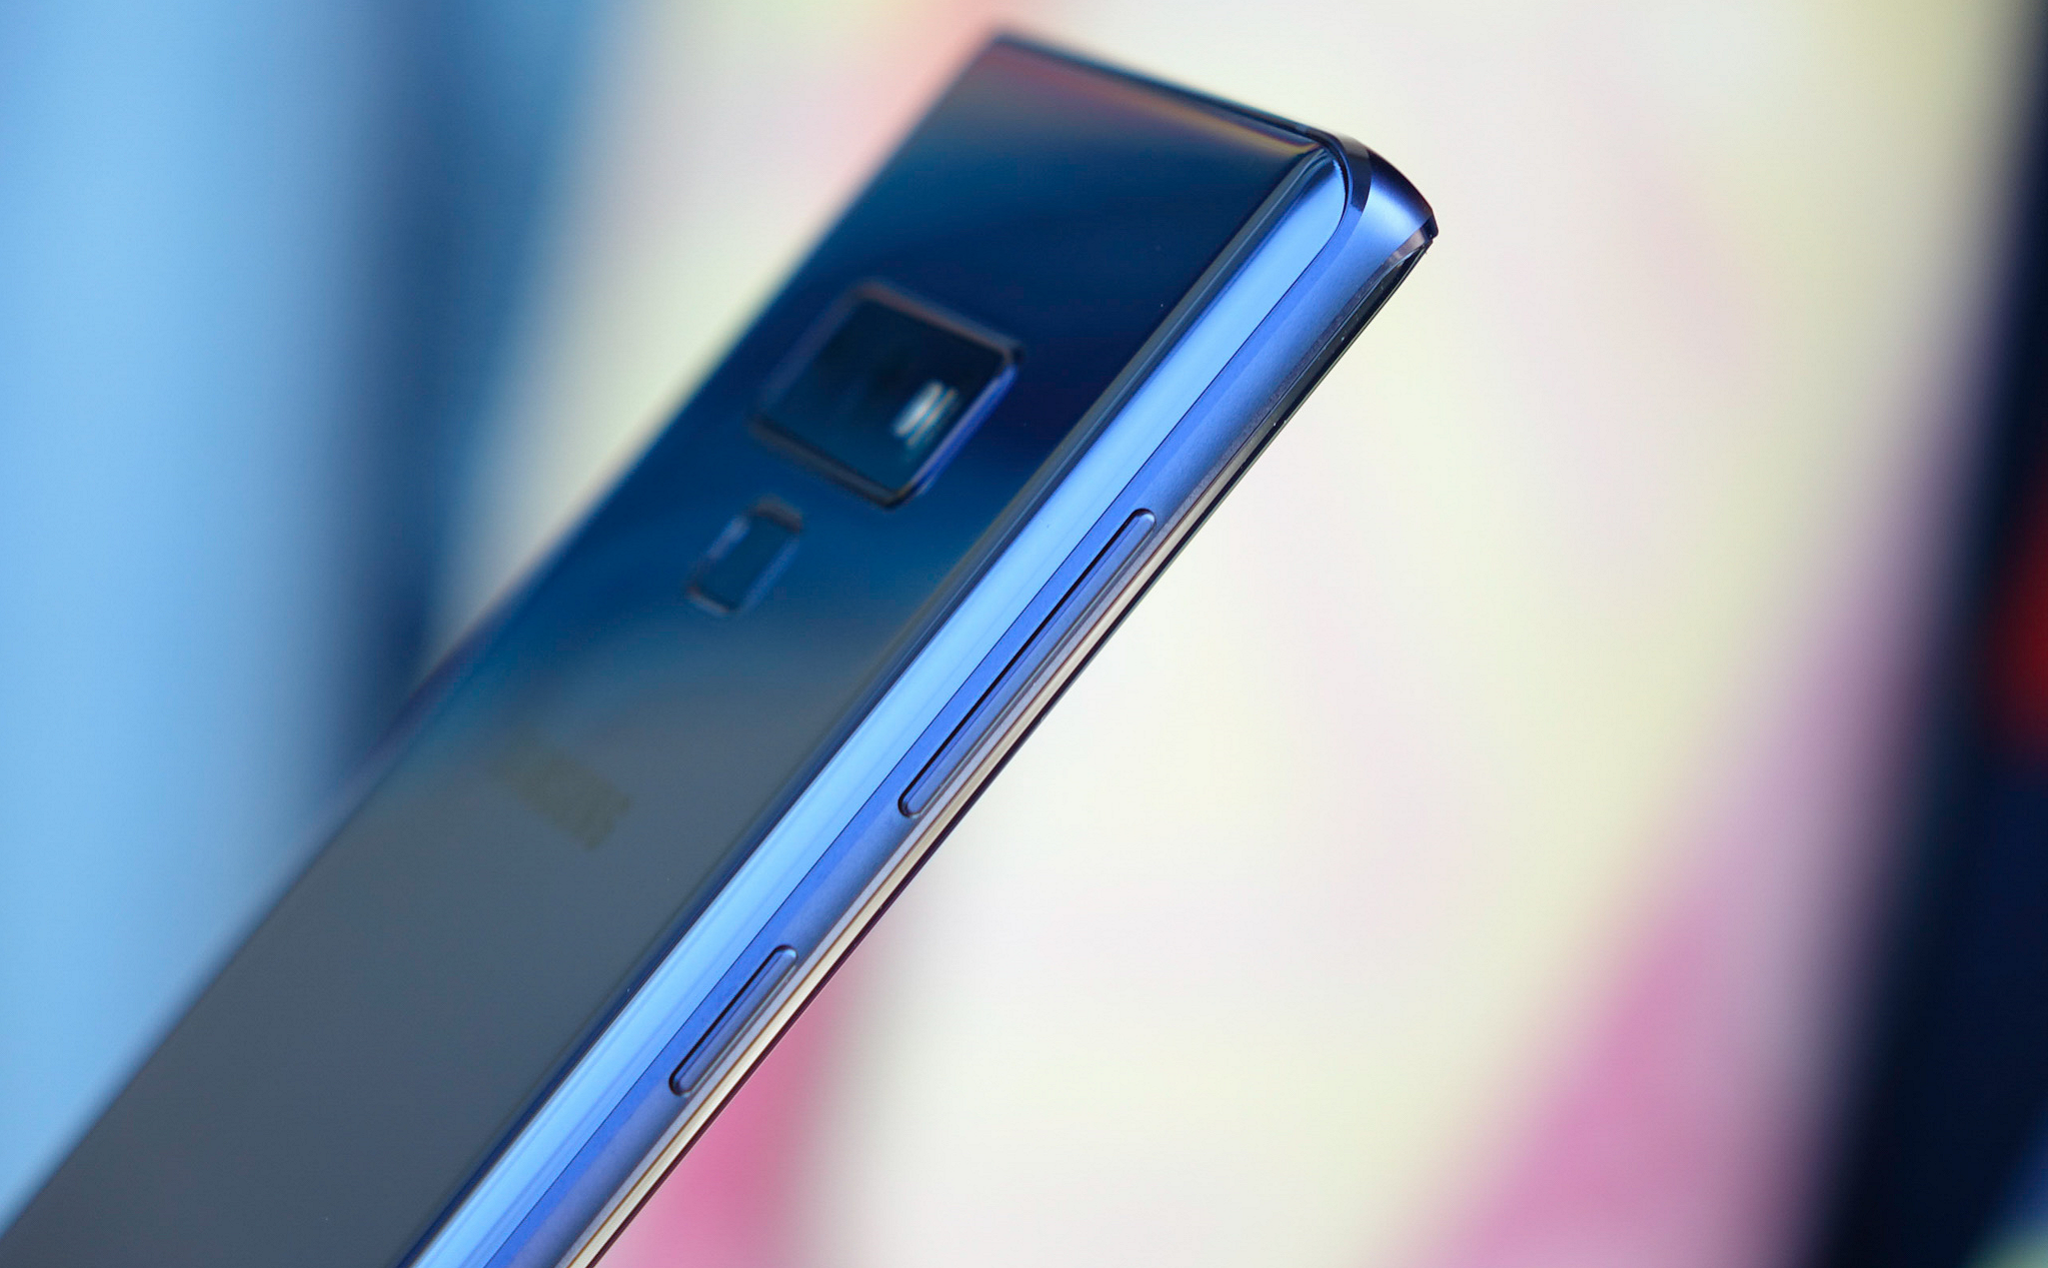 Adding leaked information about the Galaxy Note 10 will not have a 3.5 jack with volume keys, bixby, power key